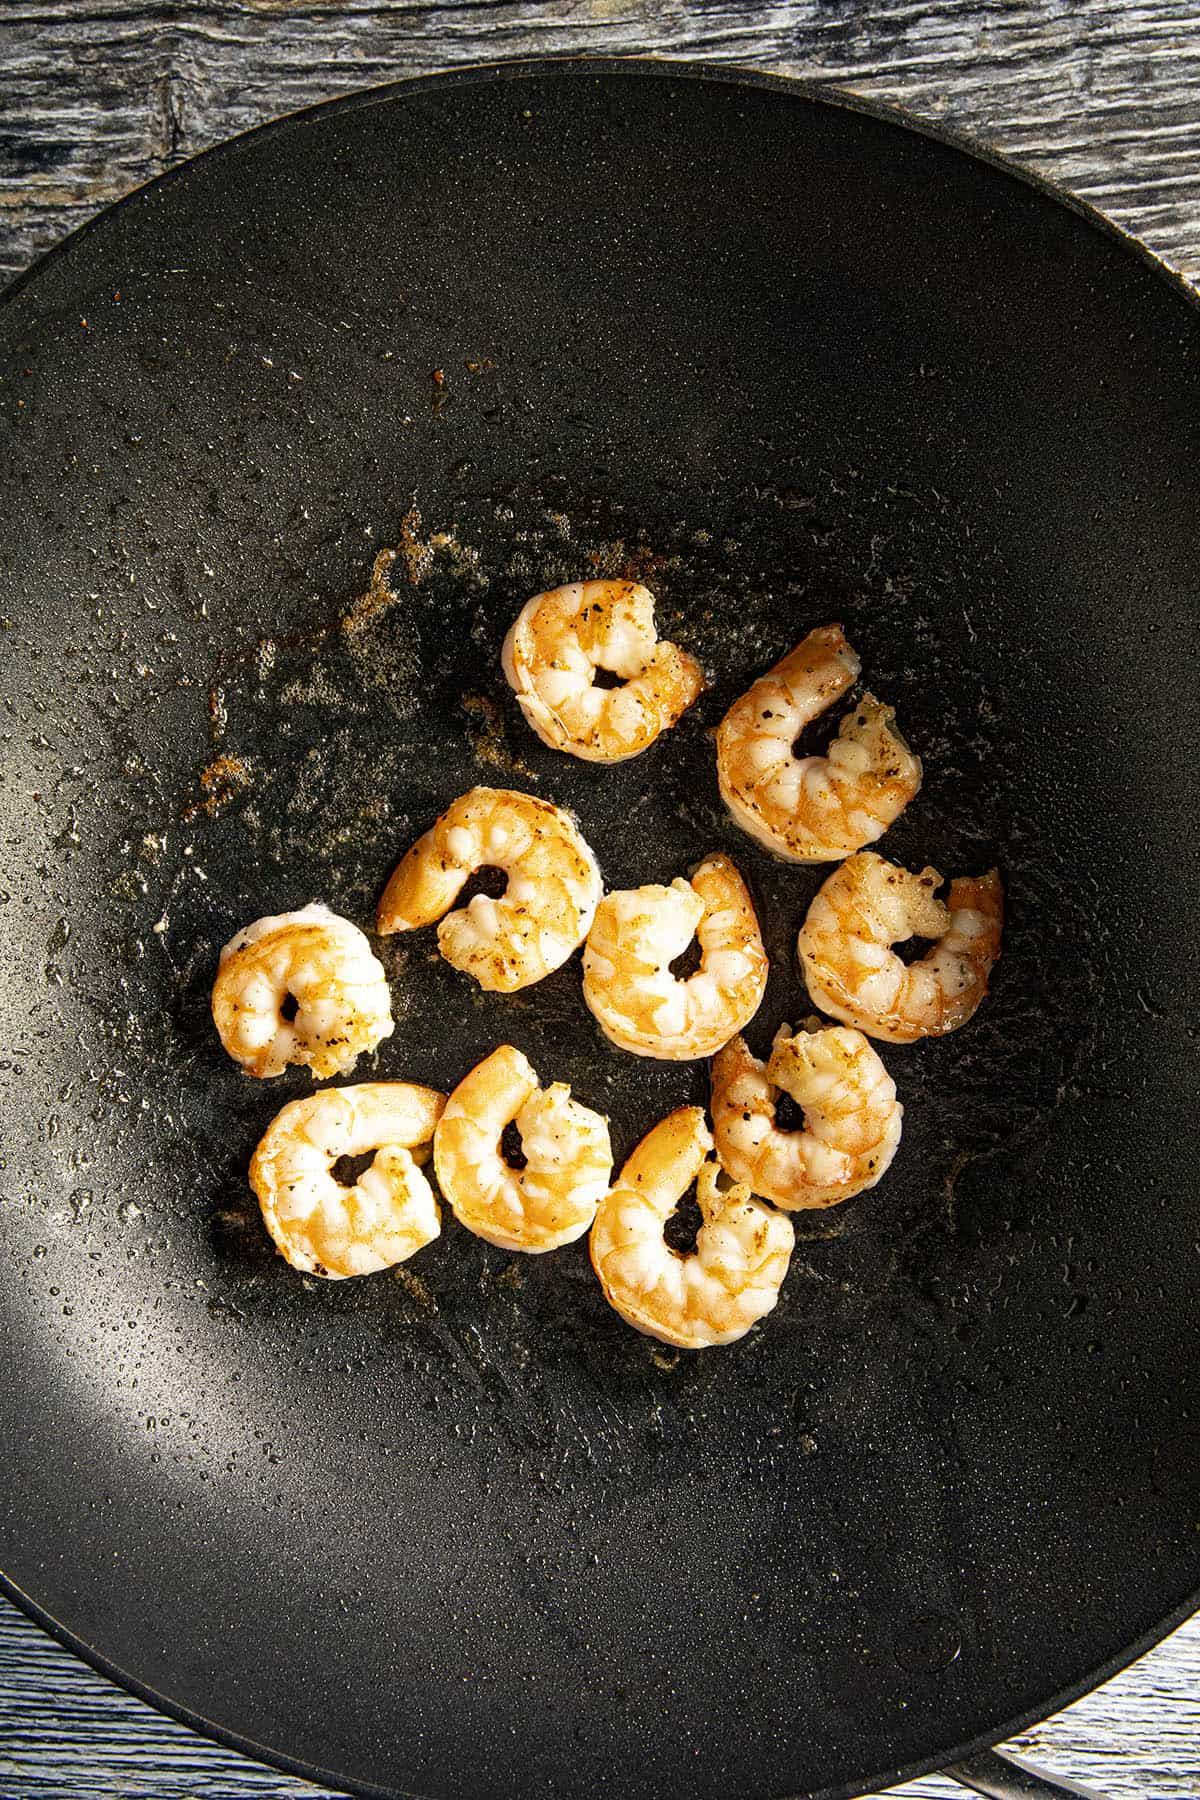 Cooking the shrimp in a pan to make Teriyaki Shrimp Stir Fry